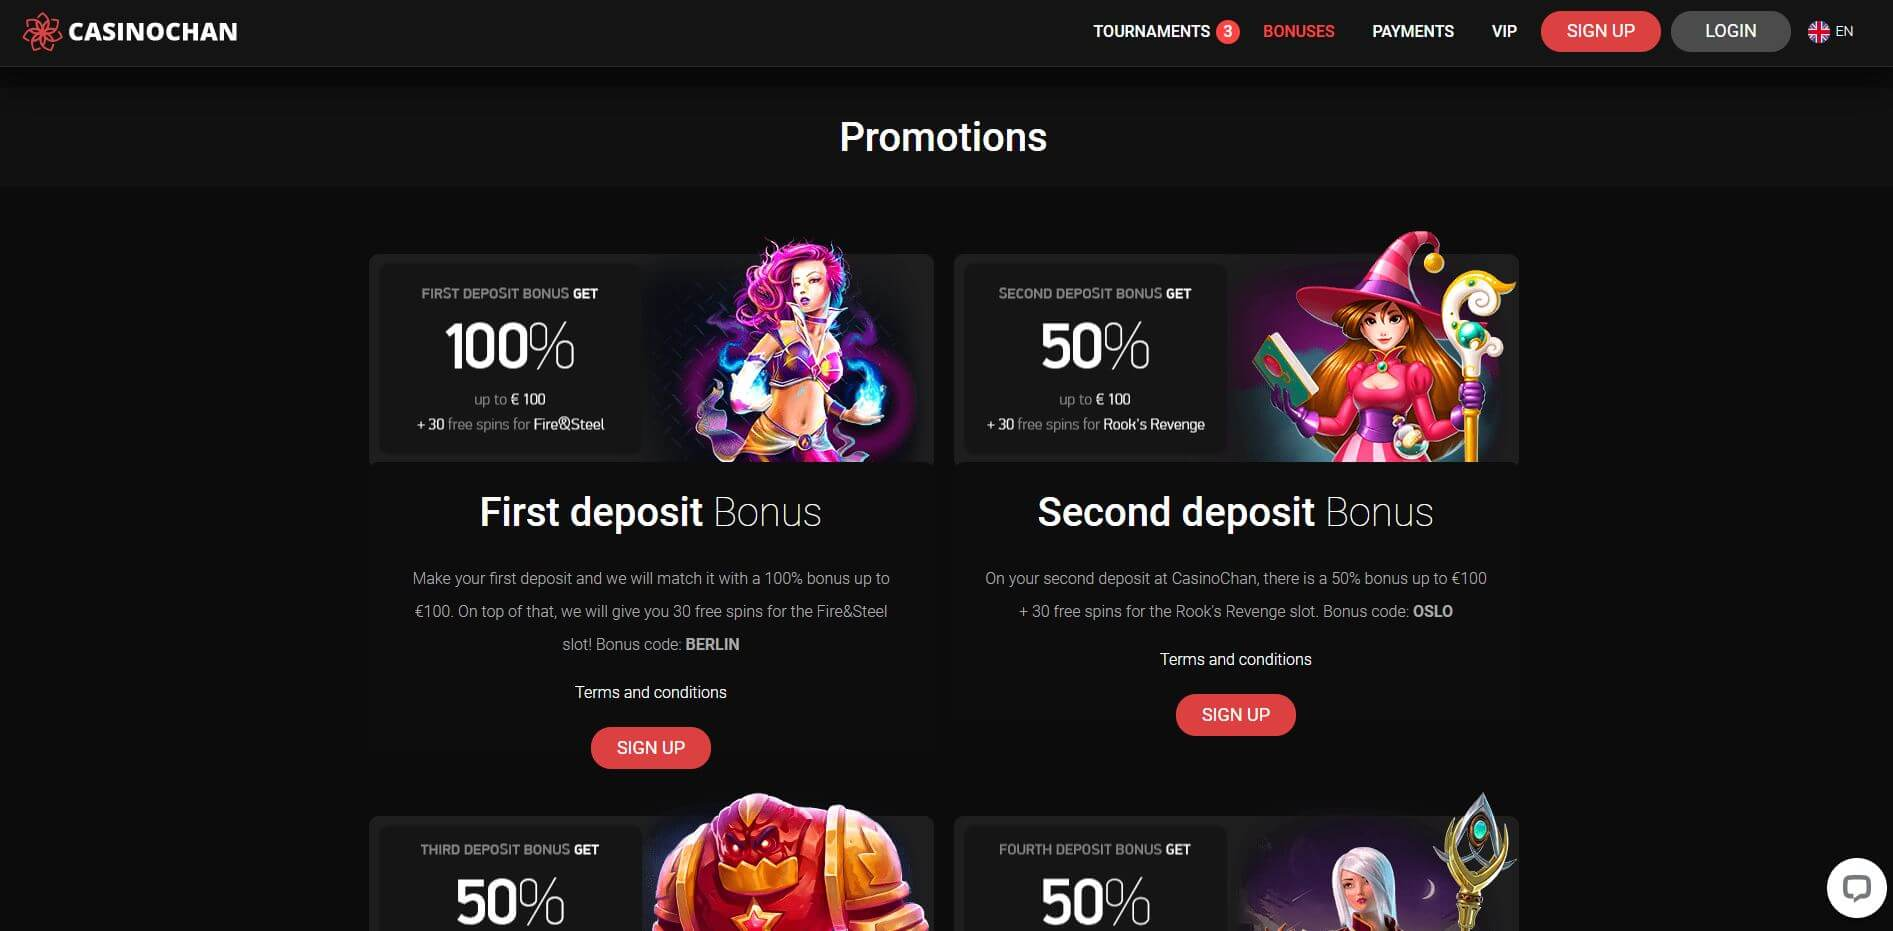 Casino Chan Promotions